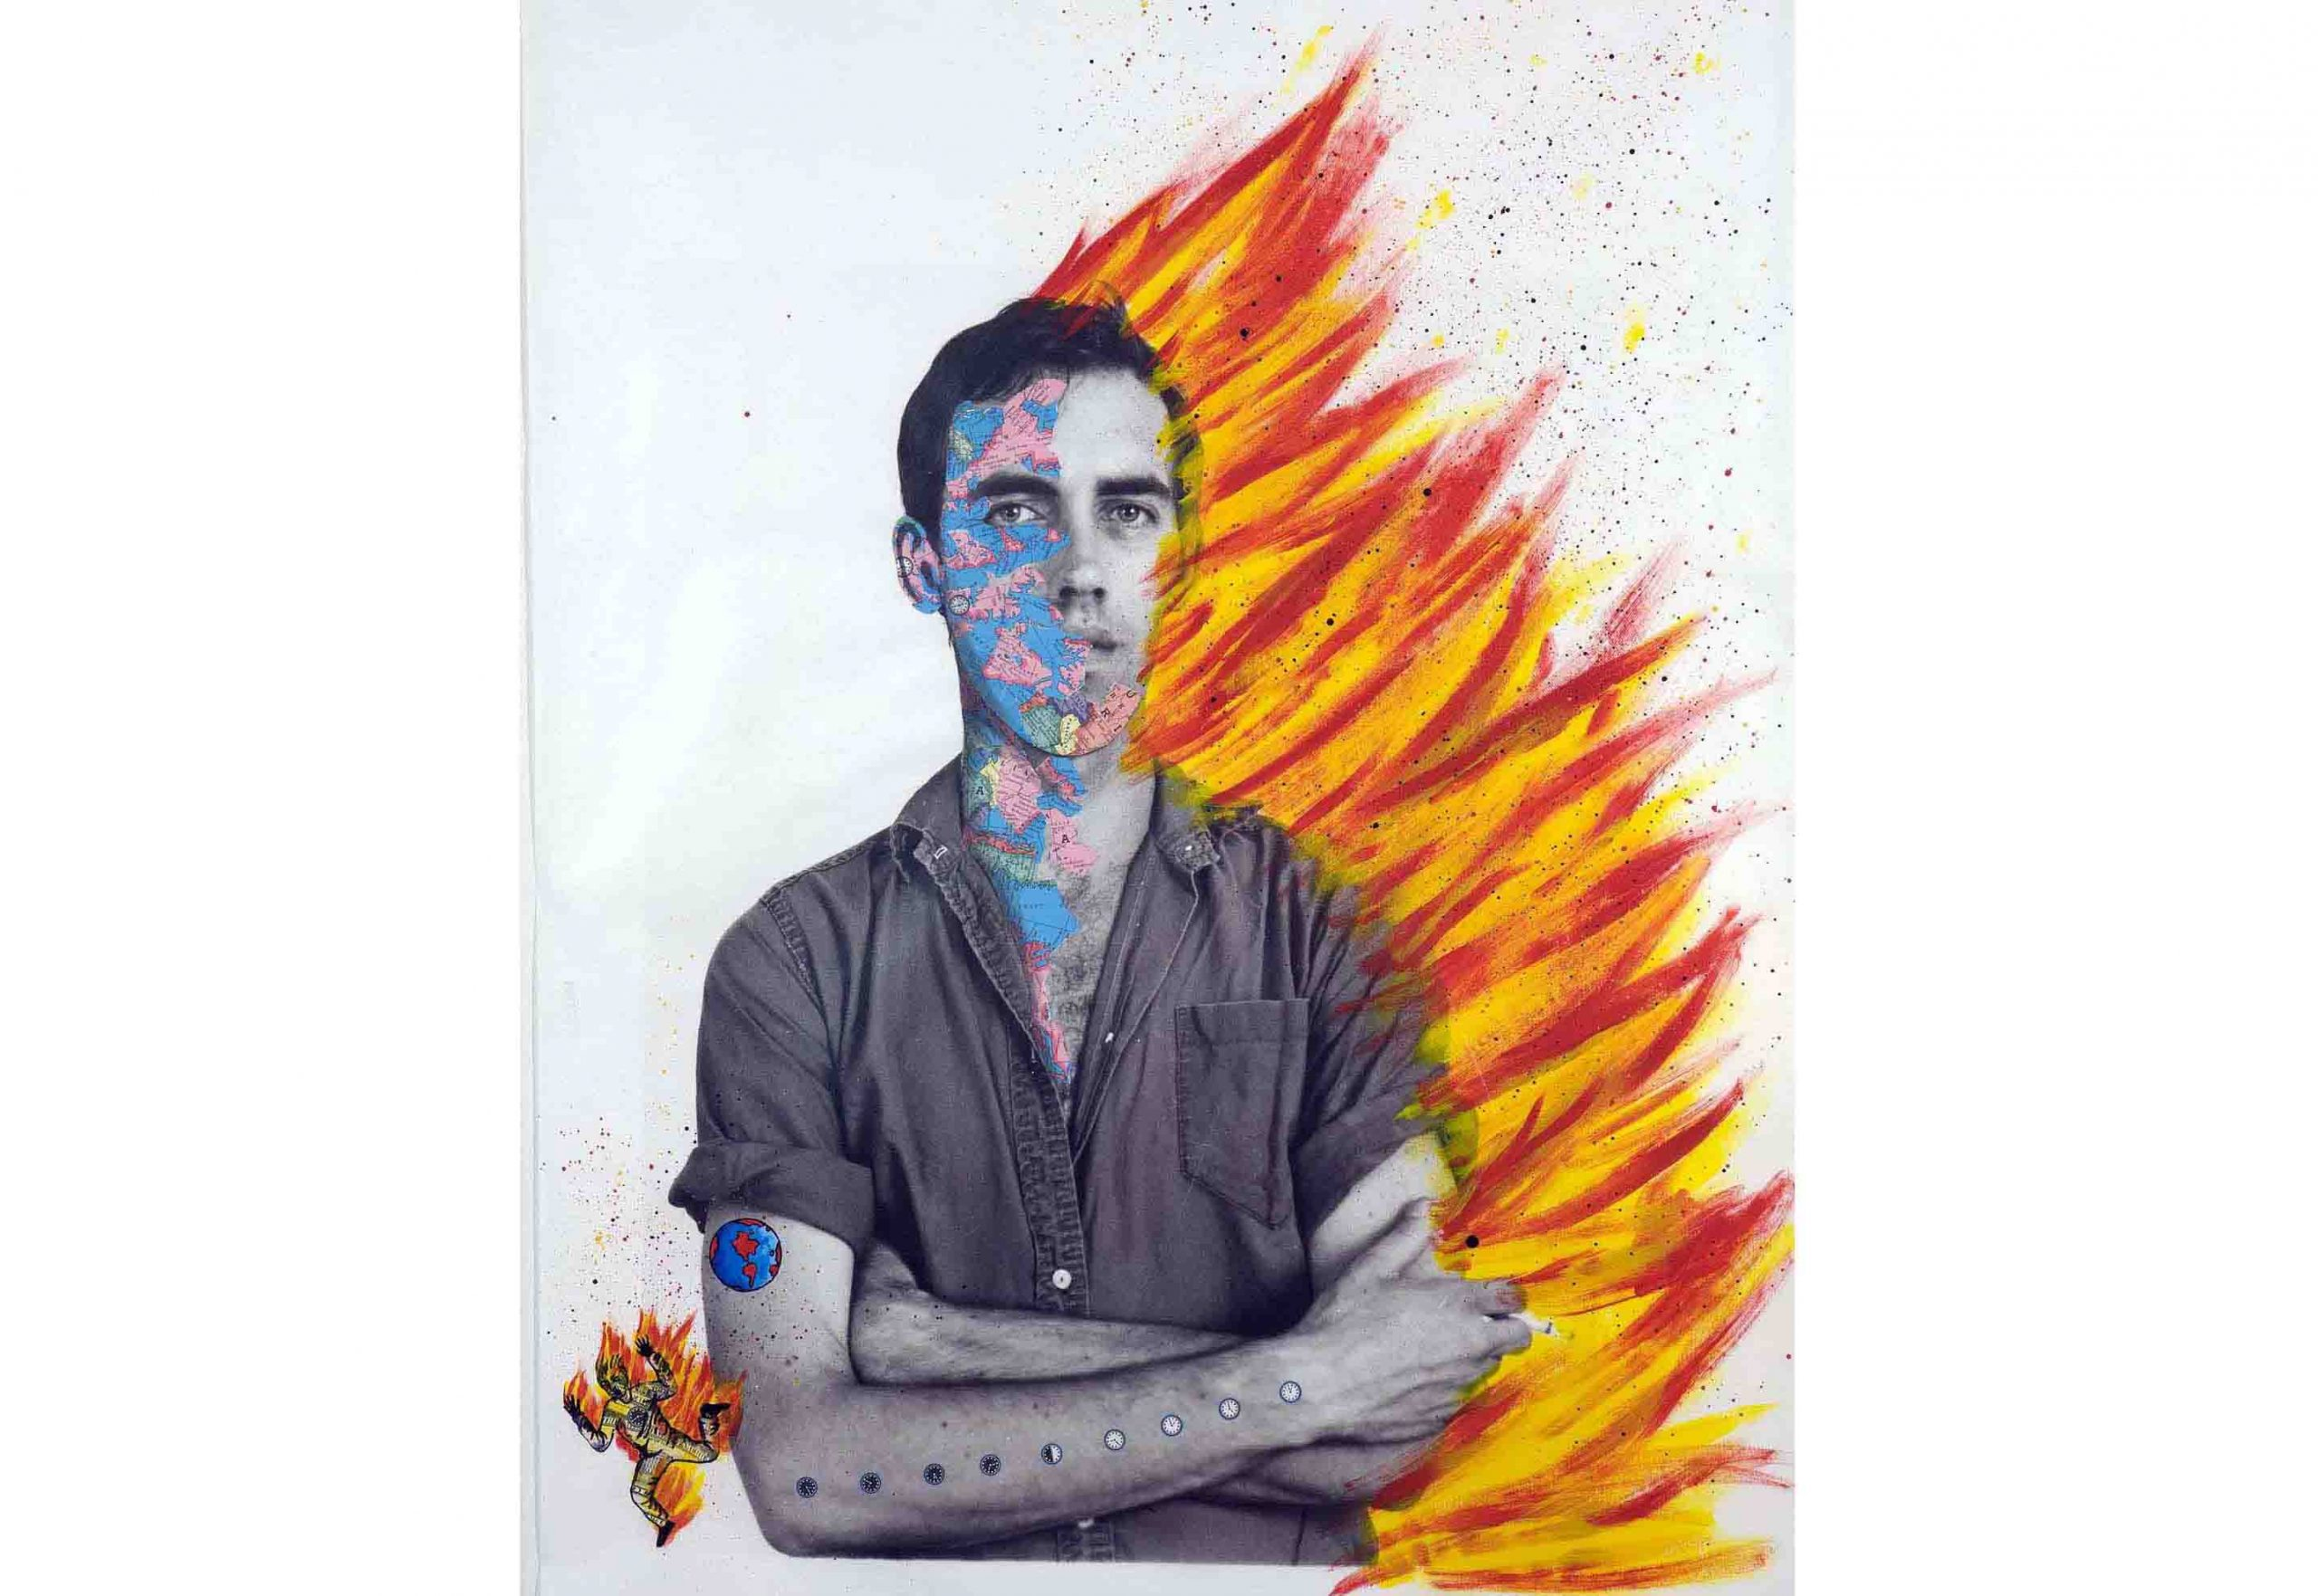 A New David Wojnarowicz Documentary Does Not Hold Back | The Village Voice